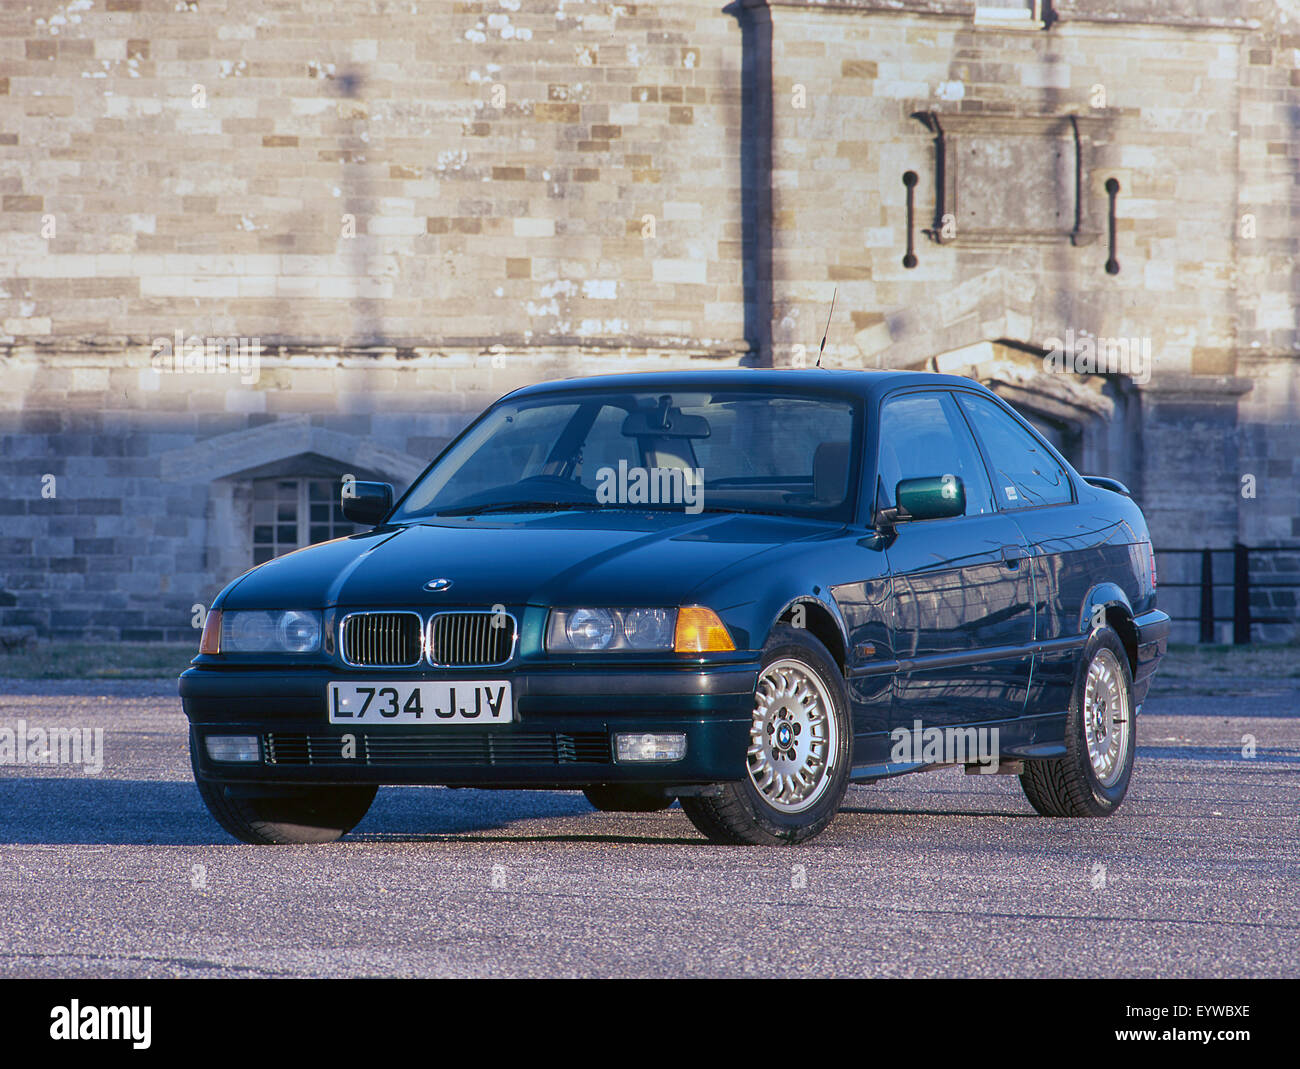 1993 BMW 318iS - Stock Image